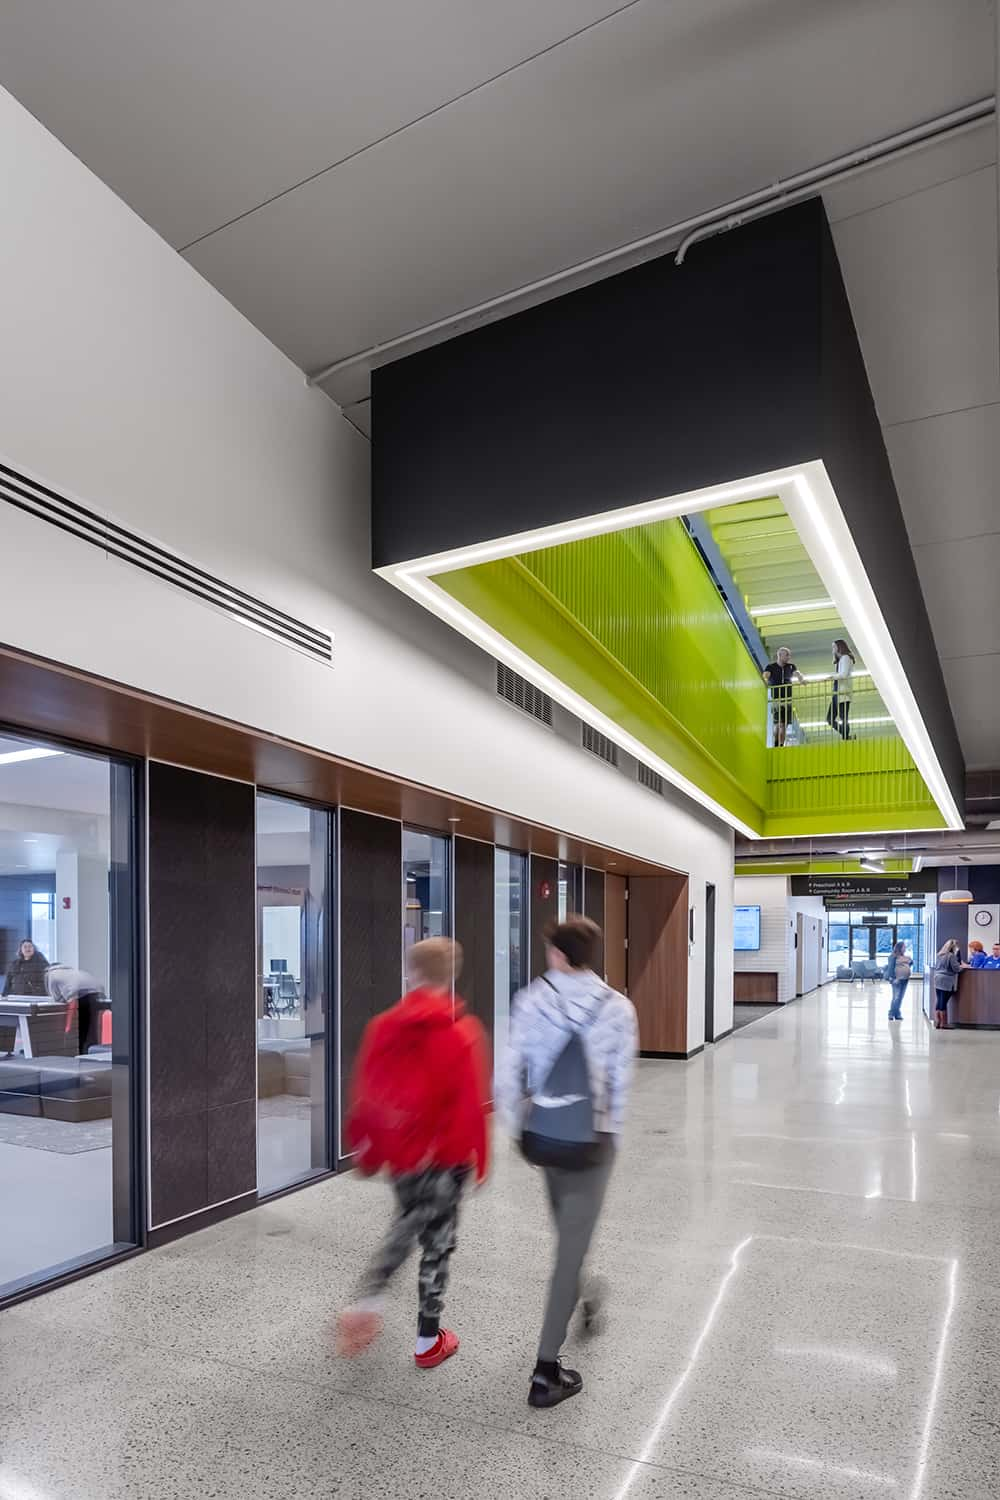 A main floor corridor leads to a welcome desk, community spaces, and a ceiling look-through into the upper level of the facility.